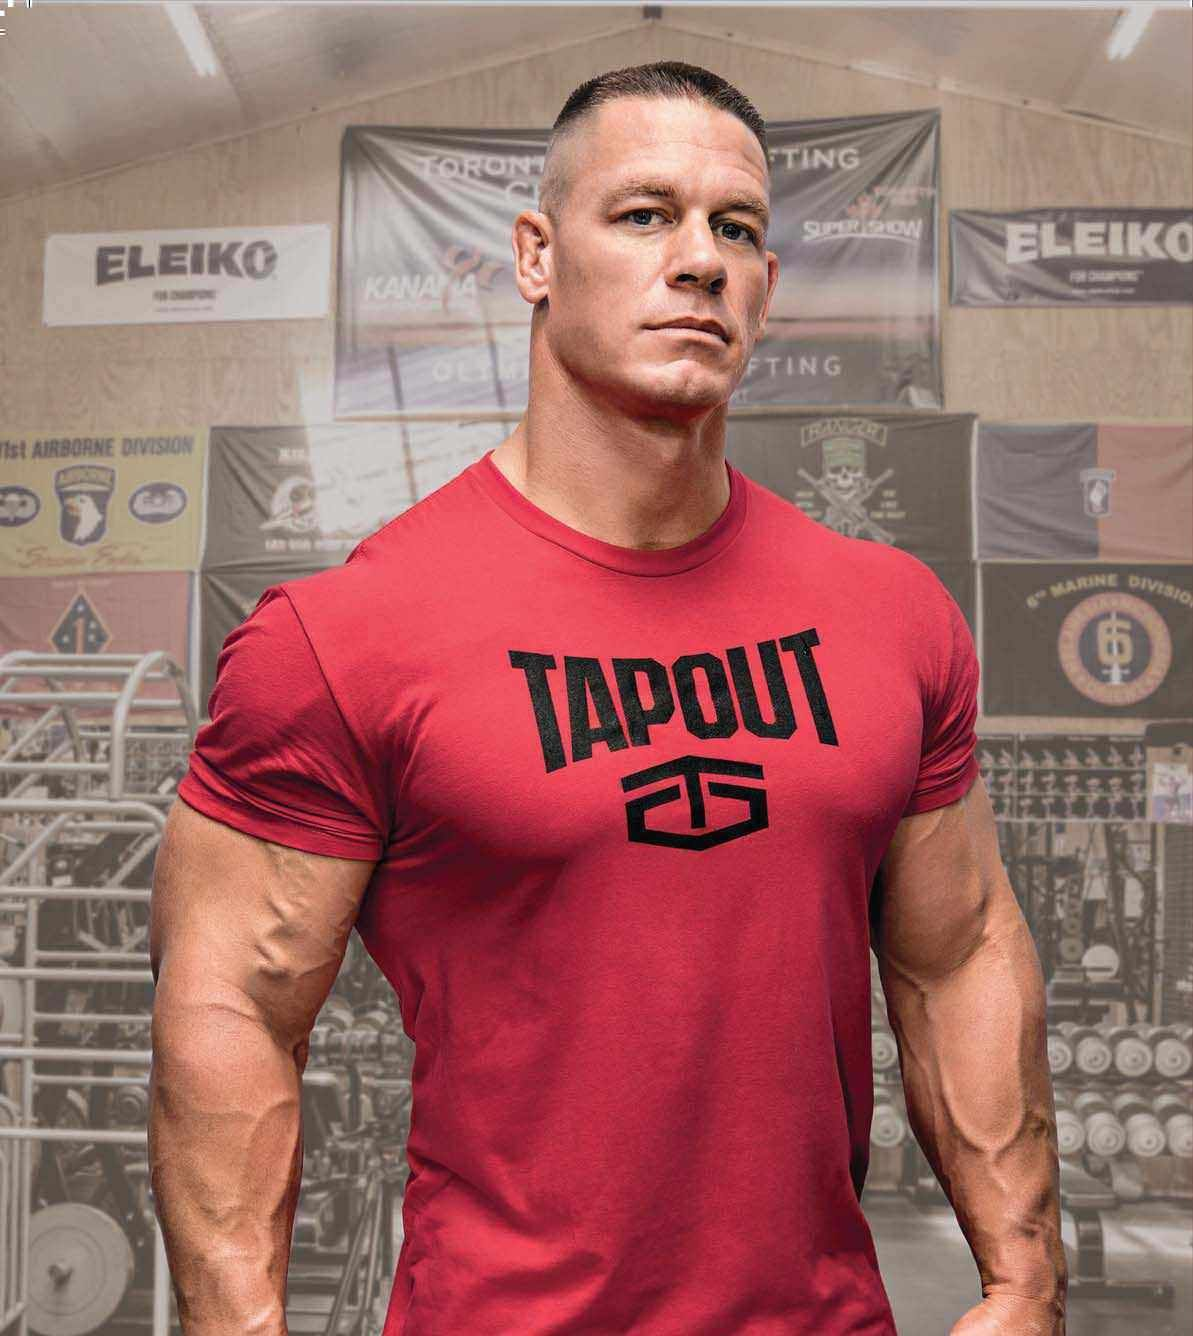 John cena has yet to peak - John cena gym image ...